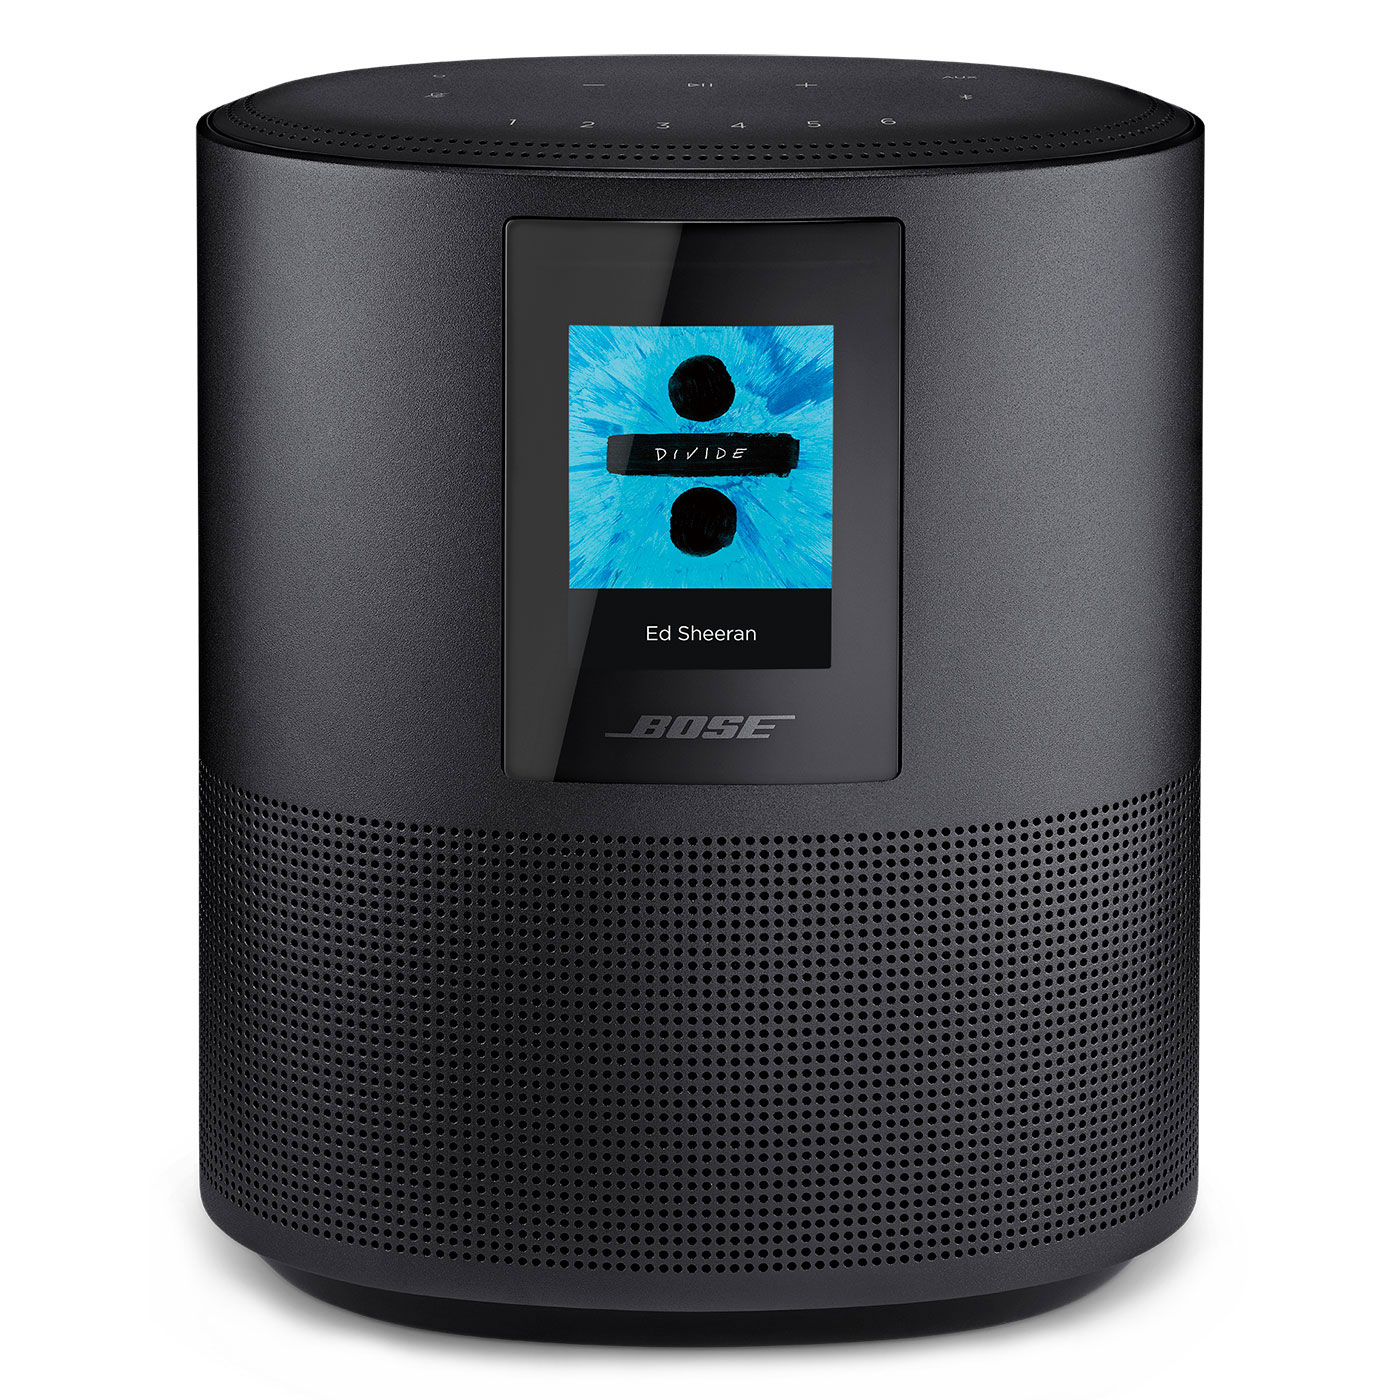 Dock & Enceinte Bluetooth Bose Home Speaker 500 Triple Black Enceinte sans fil Wi-Fi et Bluetooth à commande vocale avec Amazon Alexa